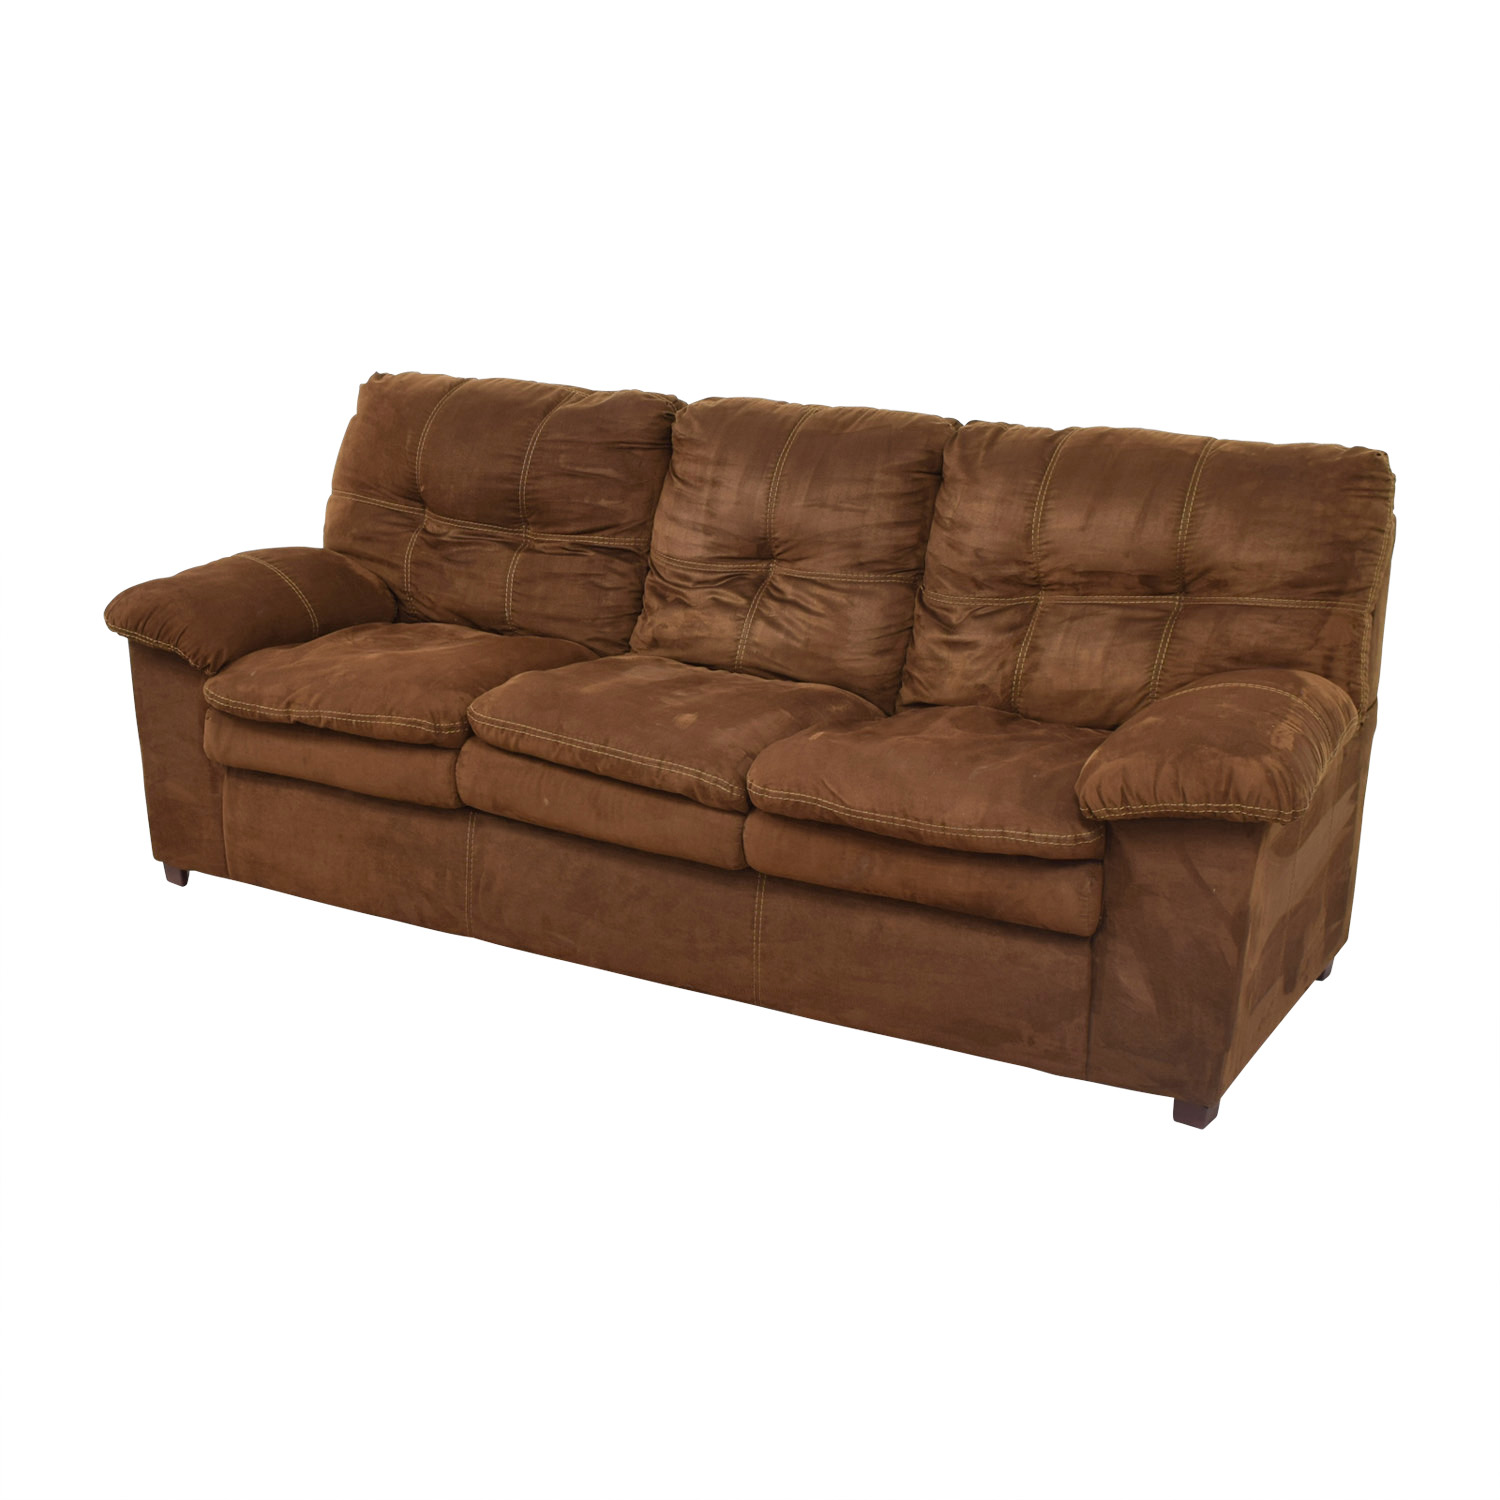 Brown Three-Cushion Pillowed Arms Sofa Sofas